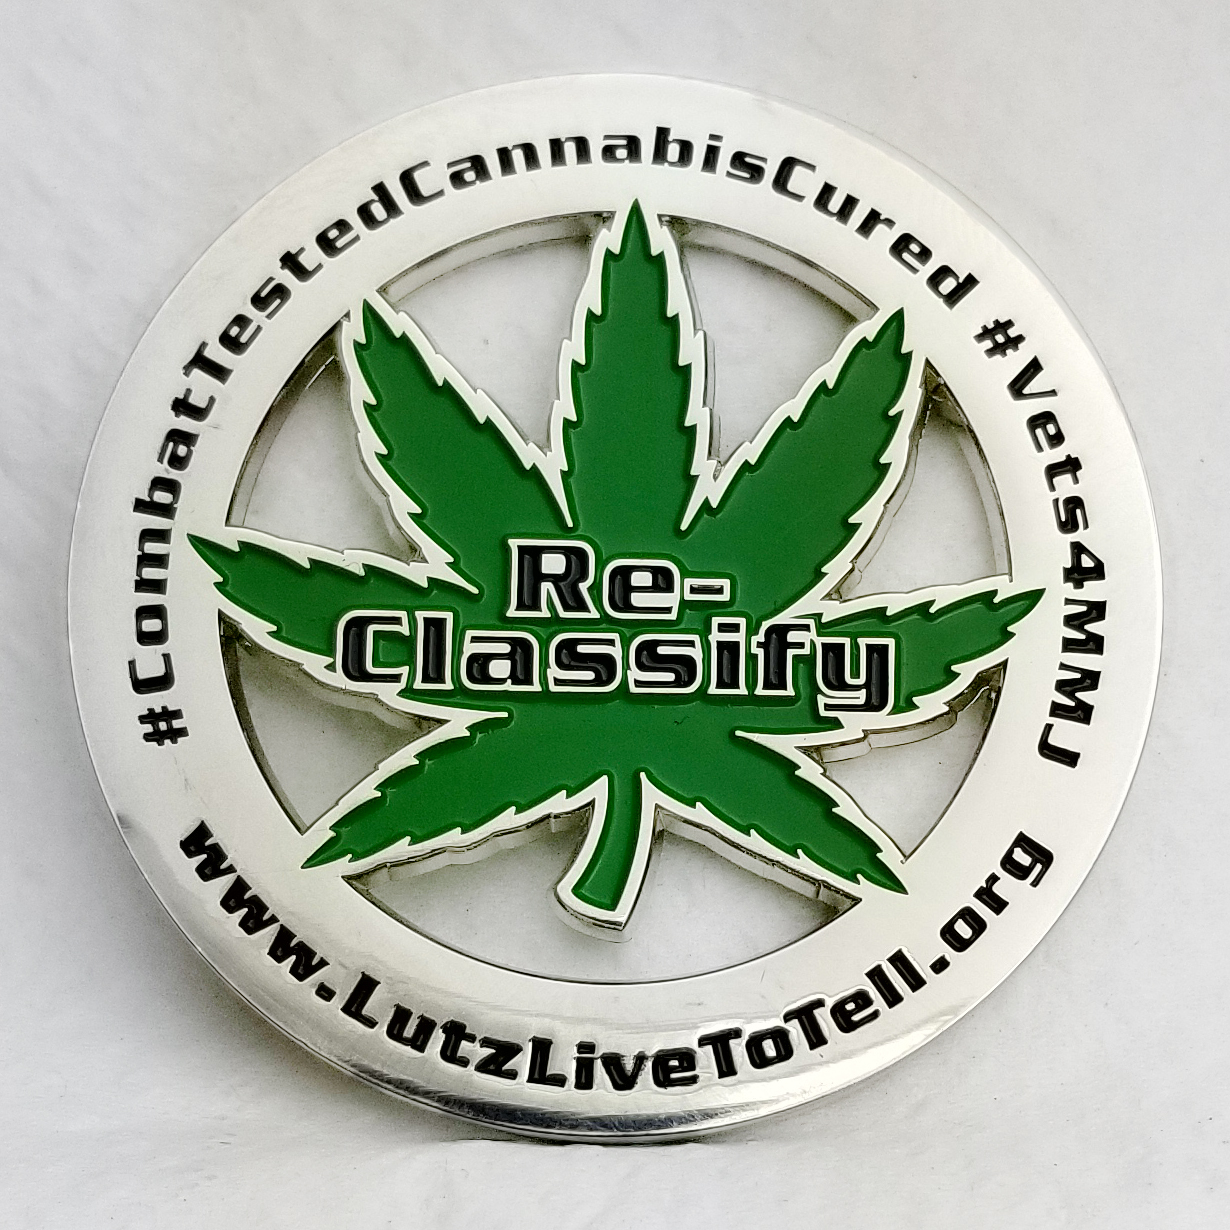 Reclassify Cannabis Challenge Coin